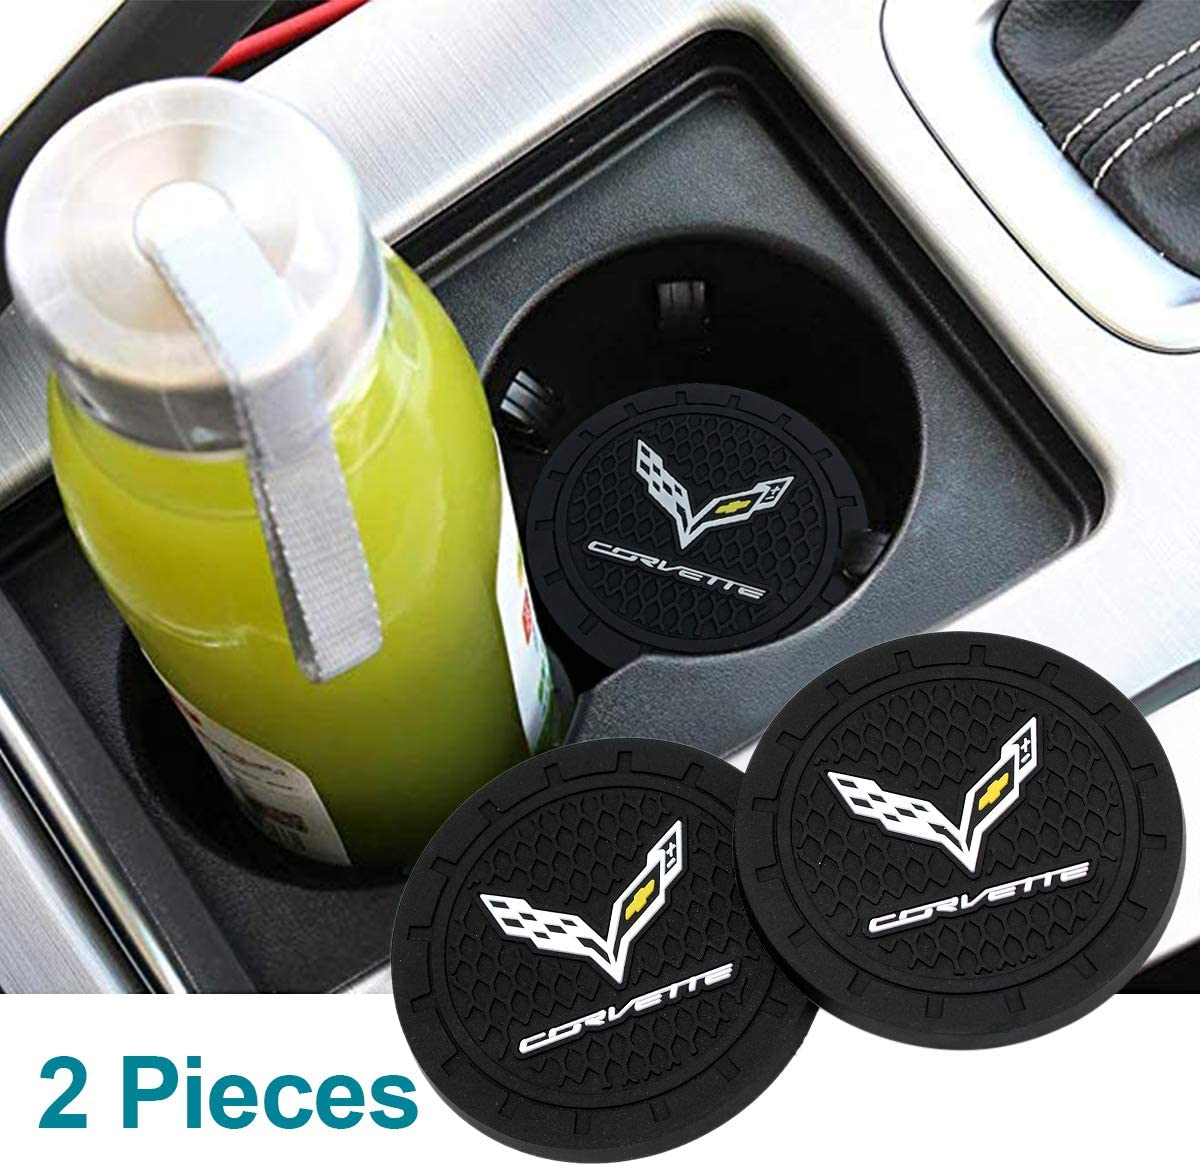 Funsport 2.75 Inch Diameter Oval Tough Car Logo Vehicle Travel Auto Cup Holder Insert Coaster Can 2 Pcs Pack Accessories Fit Mitsubishi